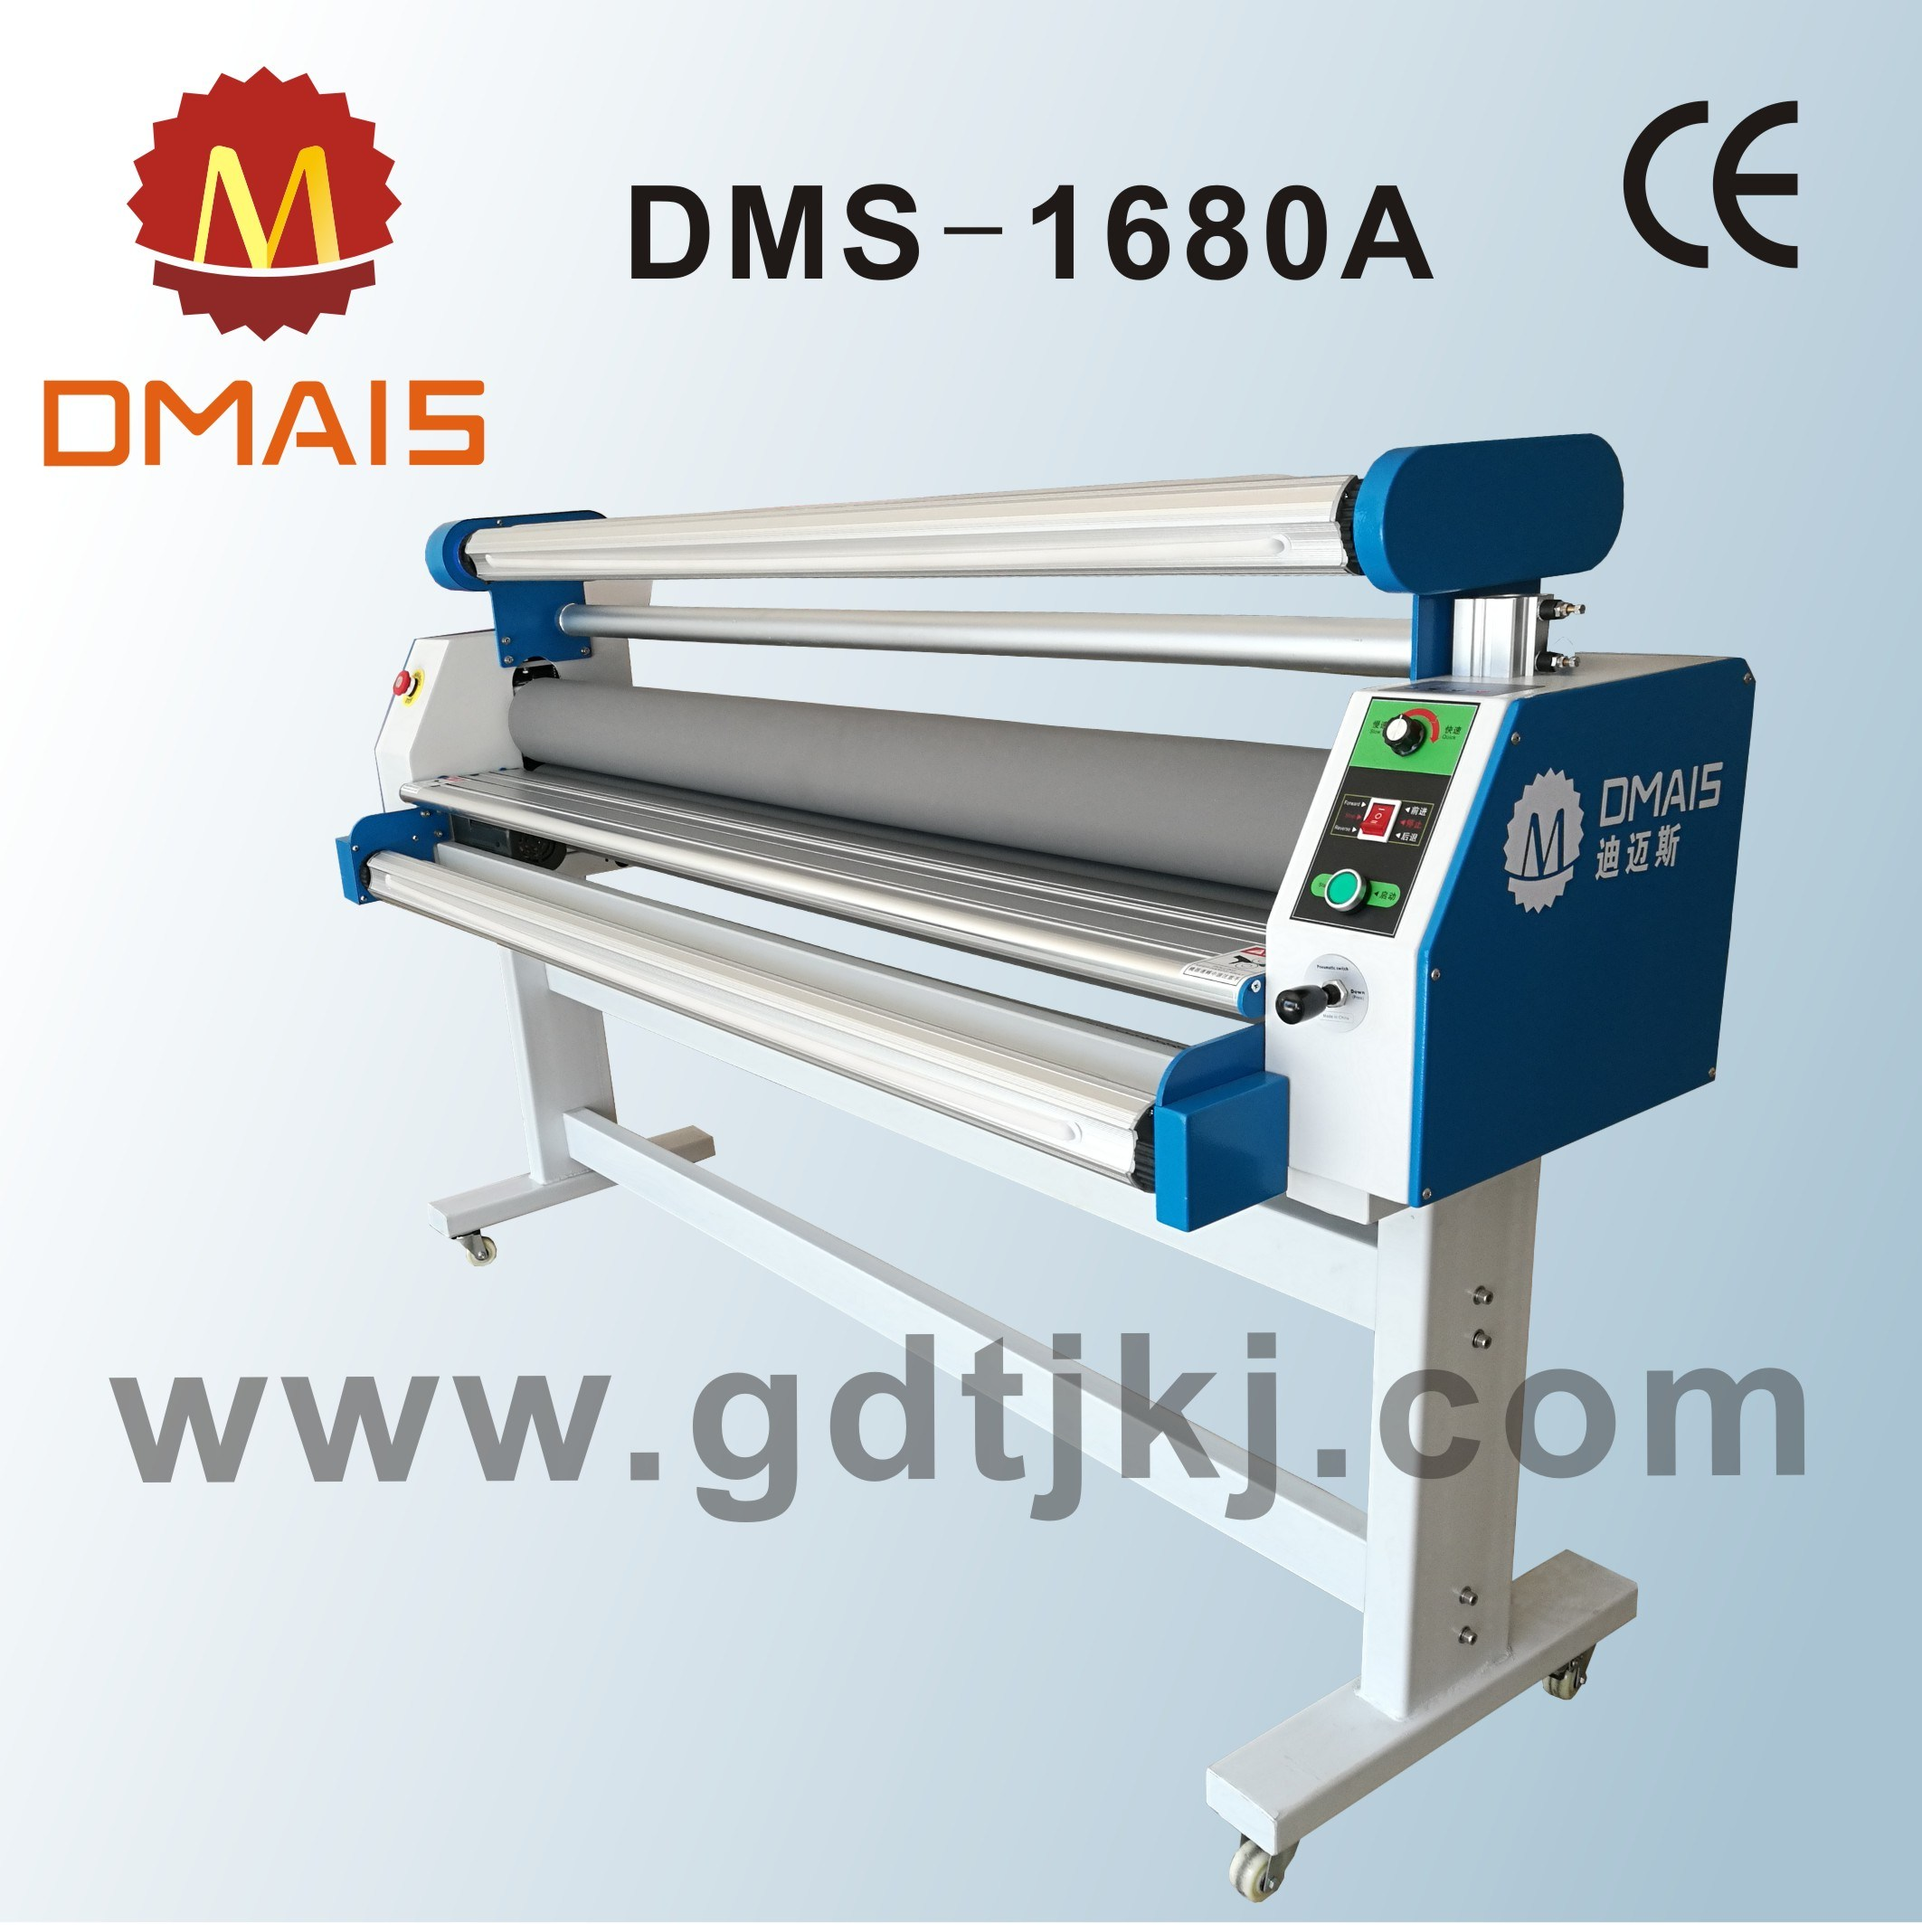 DMS-1680A Automatic Cold Lamination Machine with Cutting